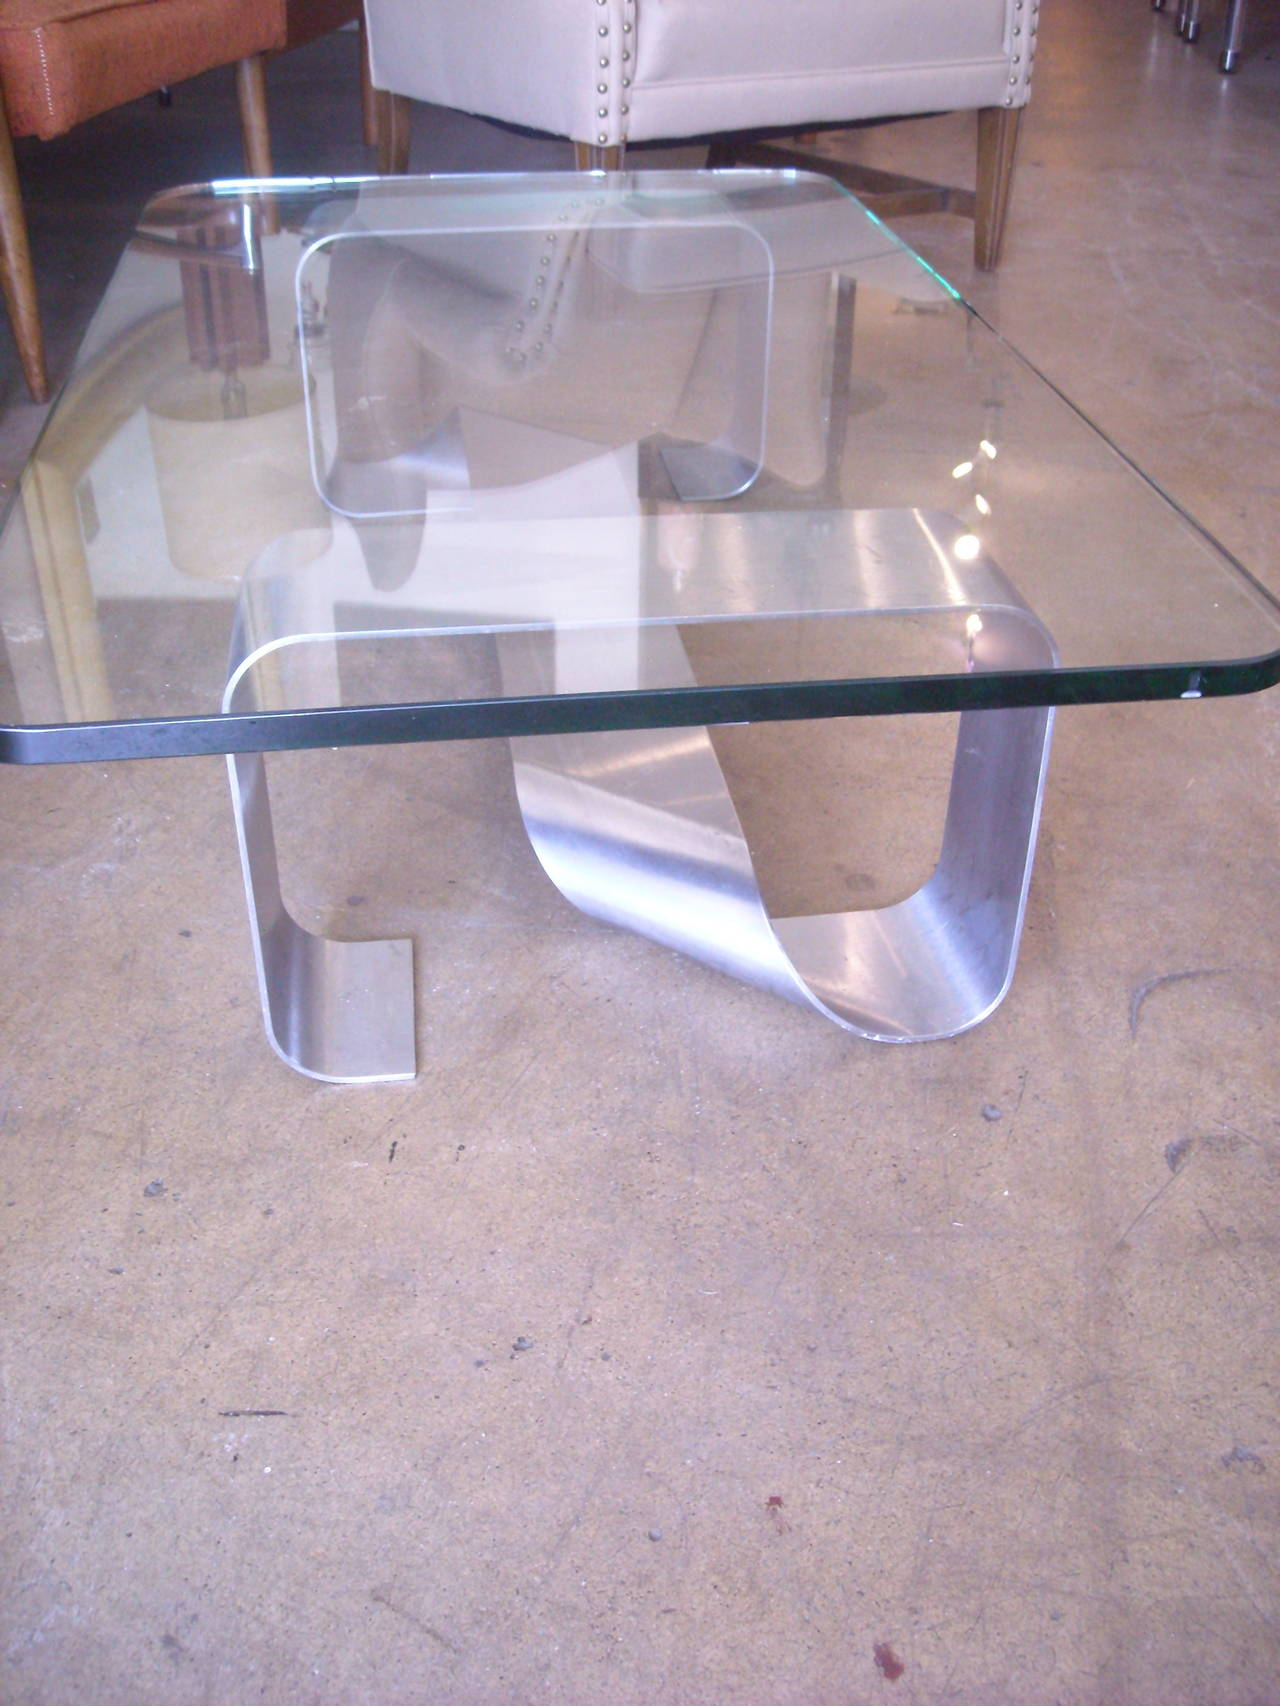 Francois Monnet Stainless Steel Coffee or Cocktail Table and Glass